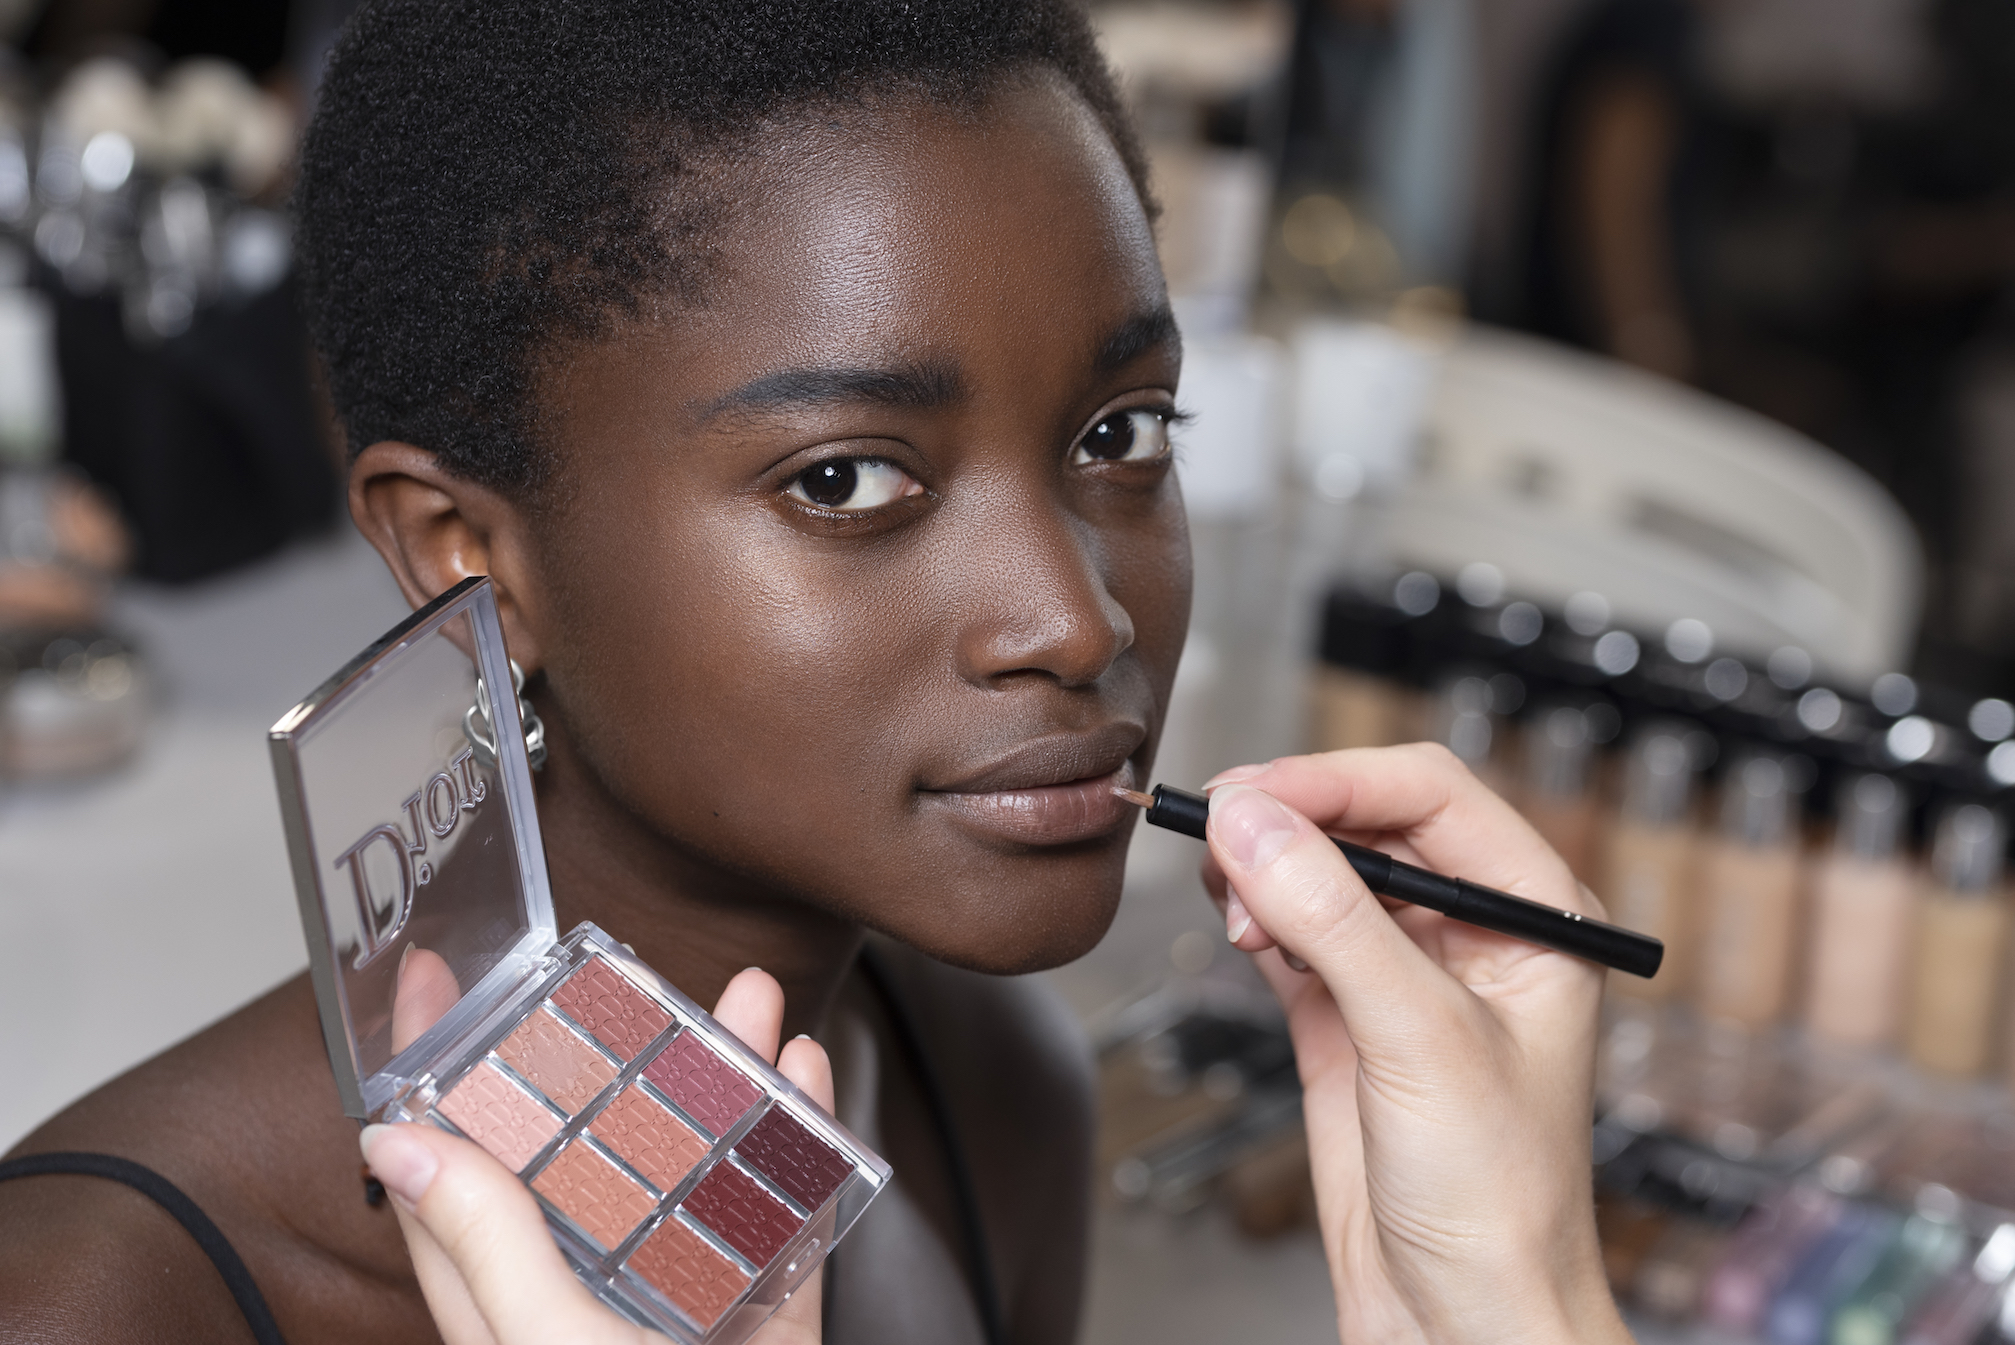 Dior Cruise 2019 Beauty